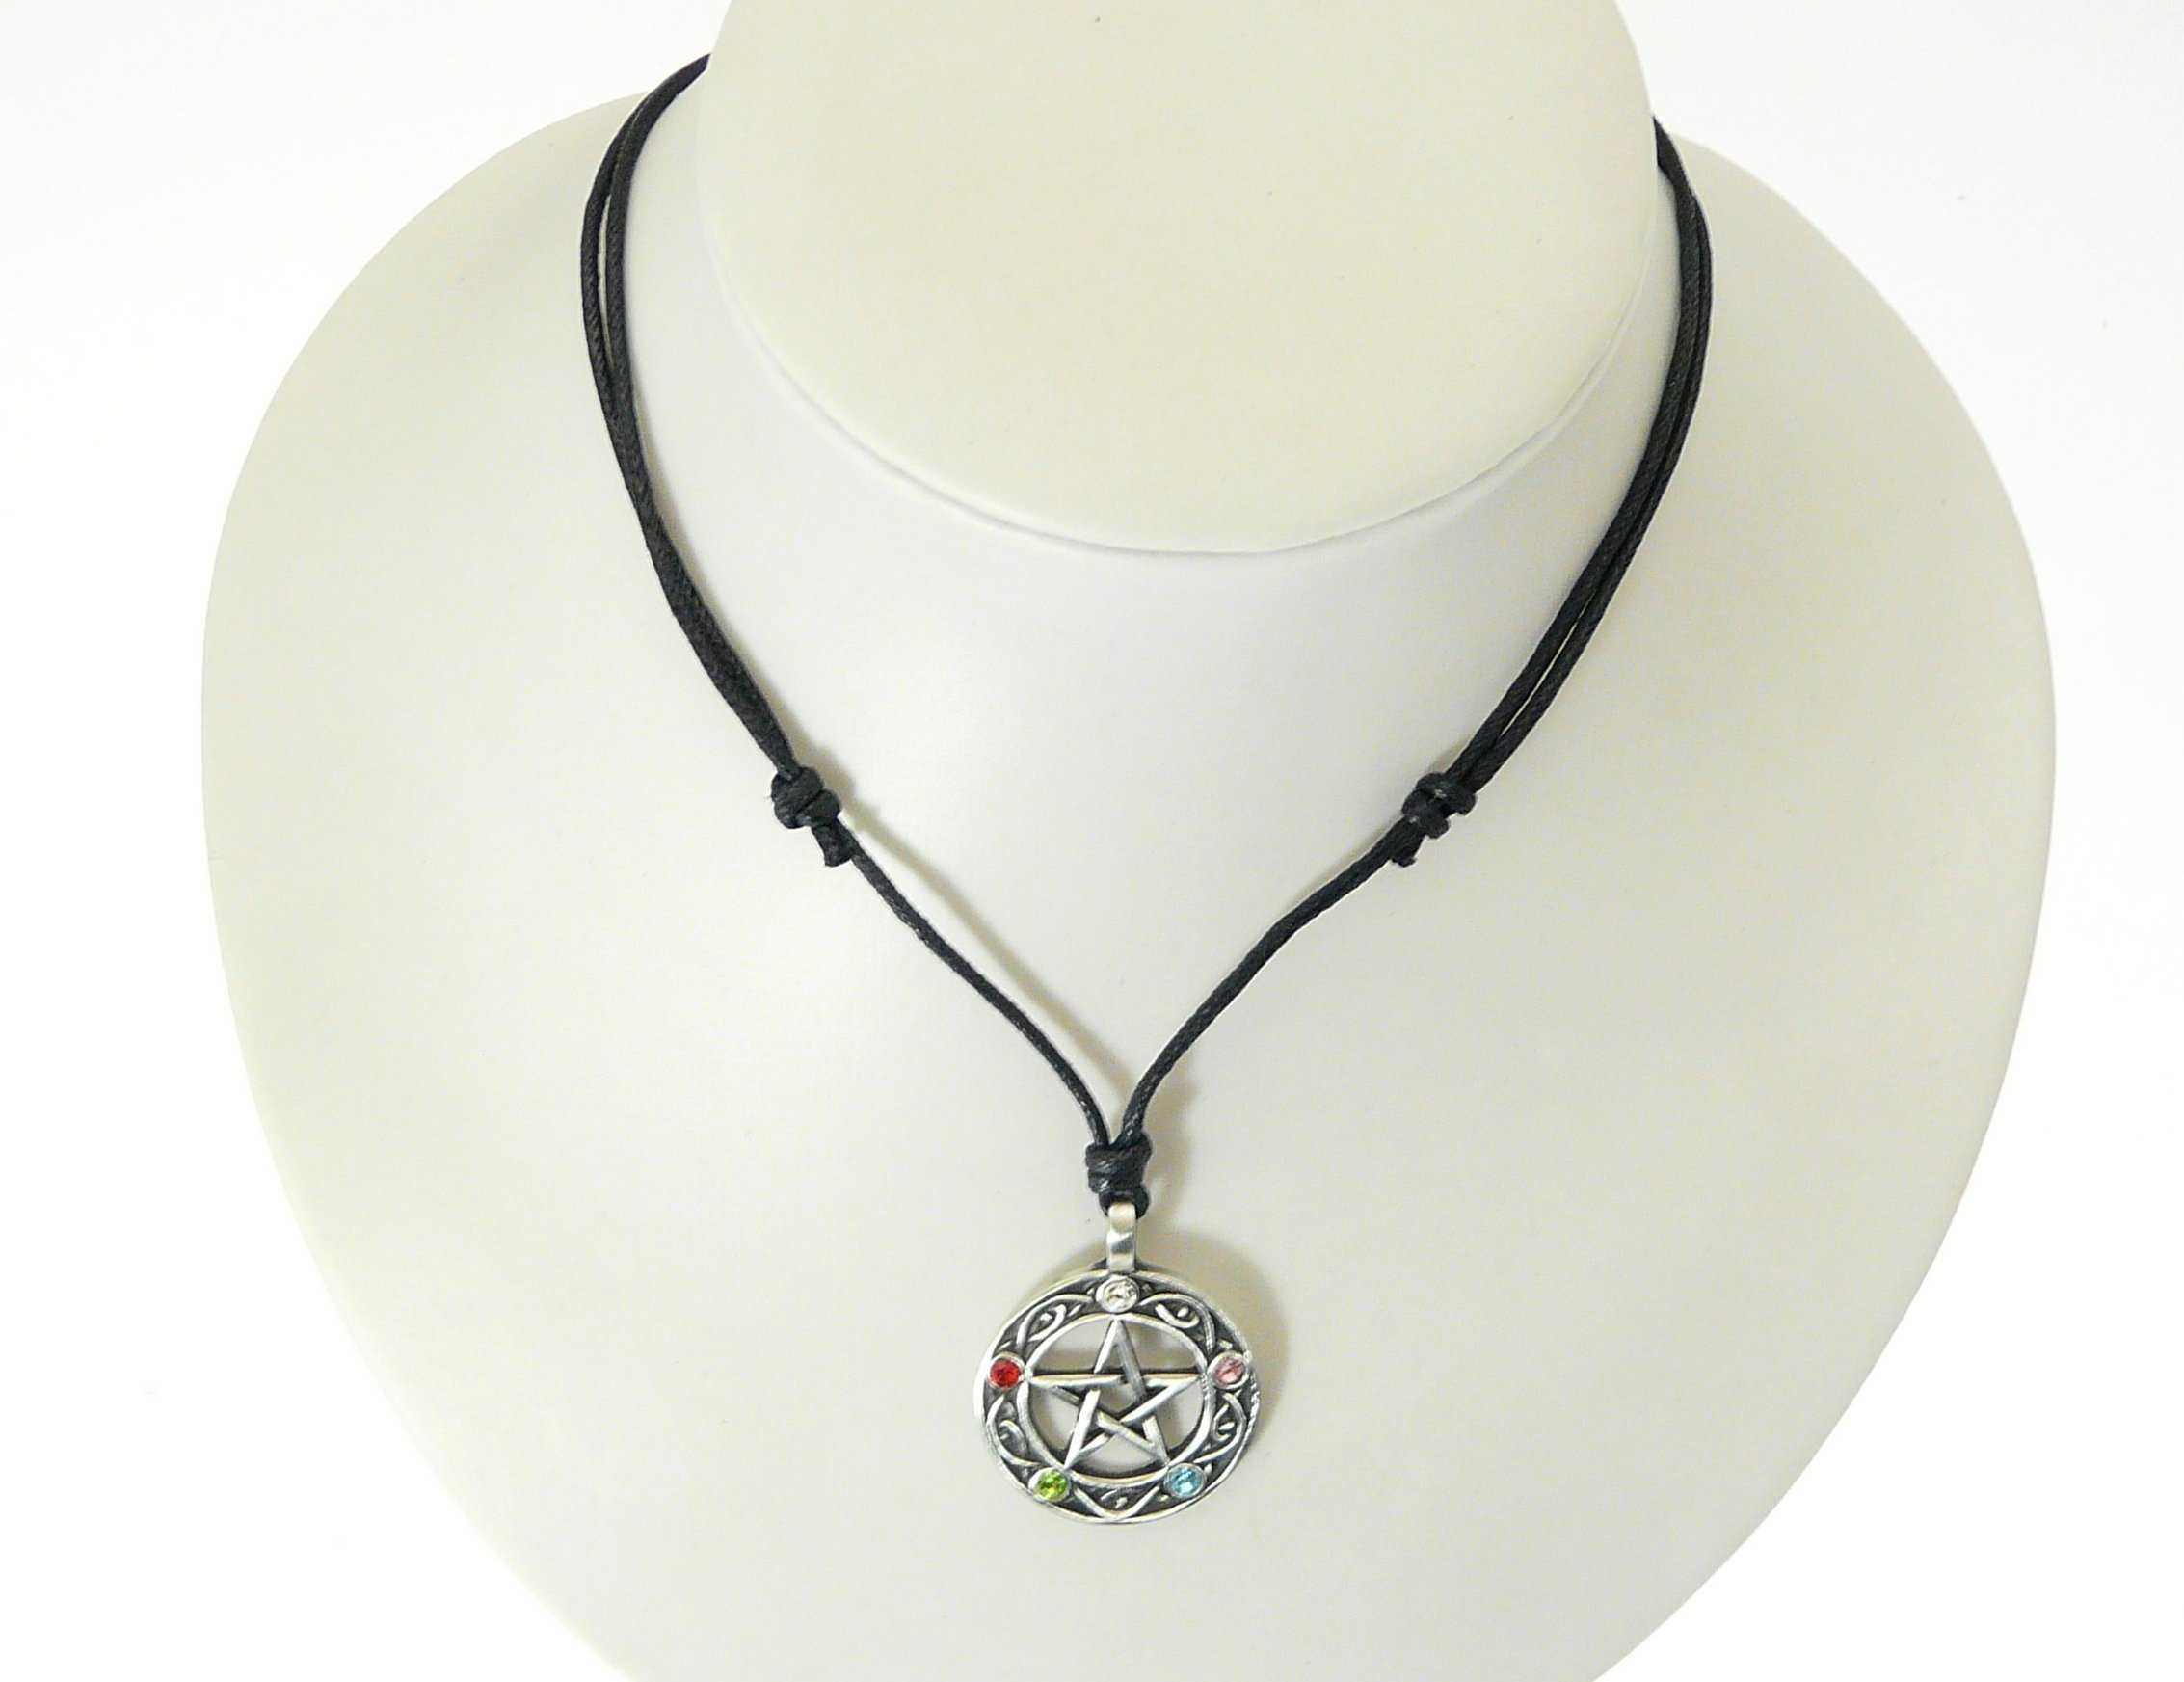 necklace jnt jewelry silver asatru cotton pewter pendant viking thor odin itm ragnarok god